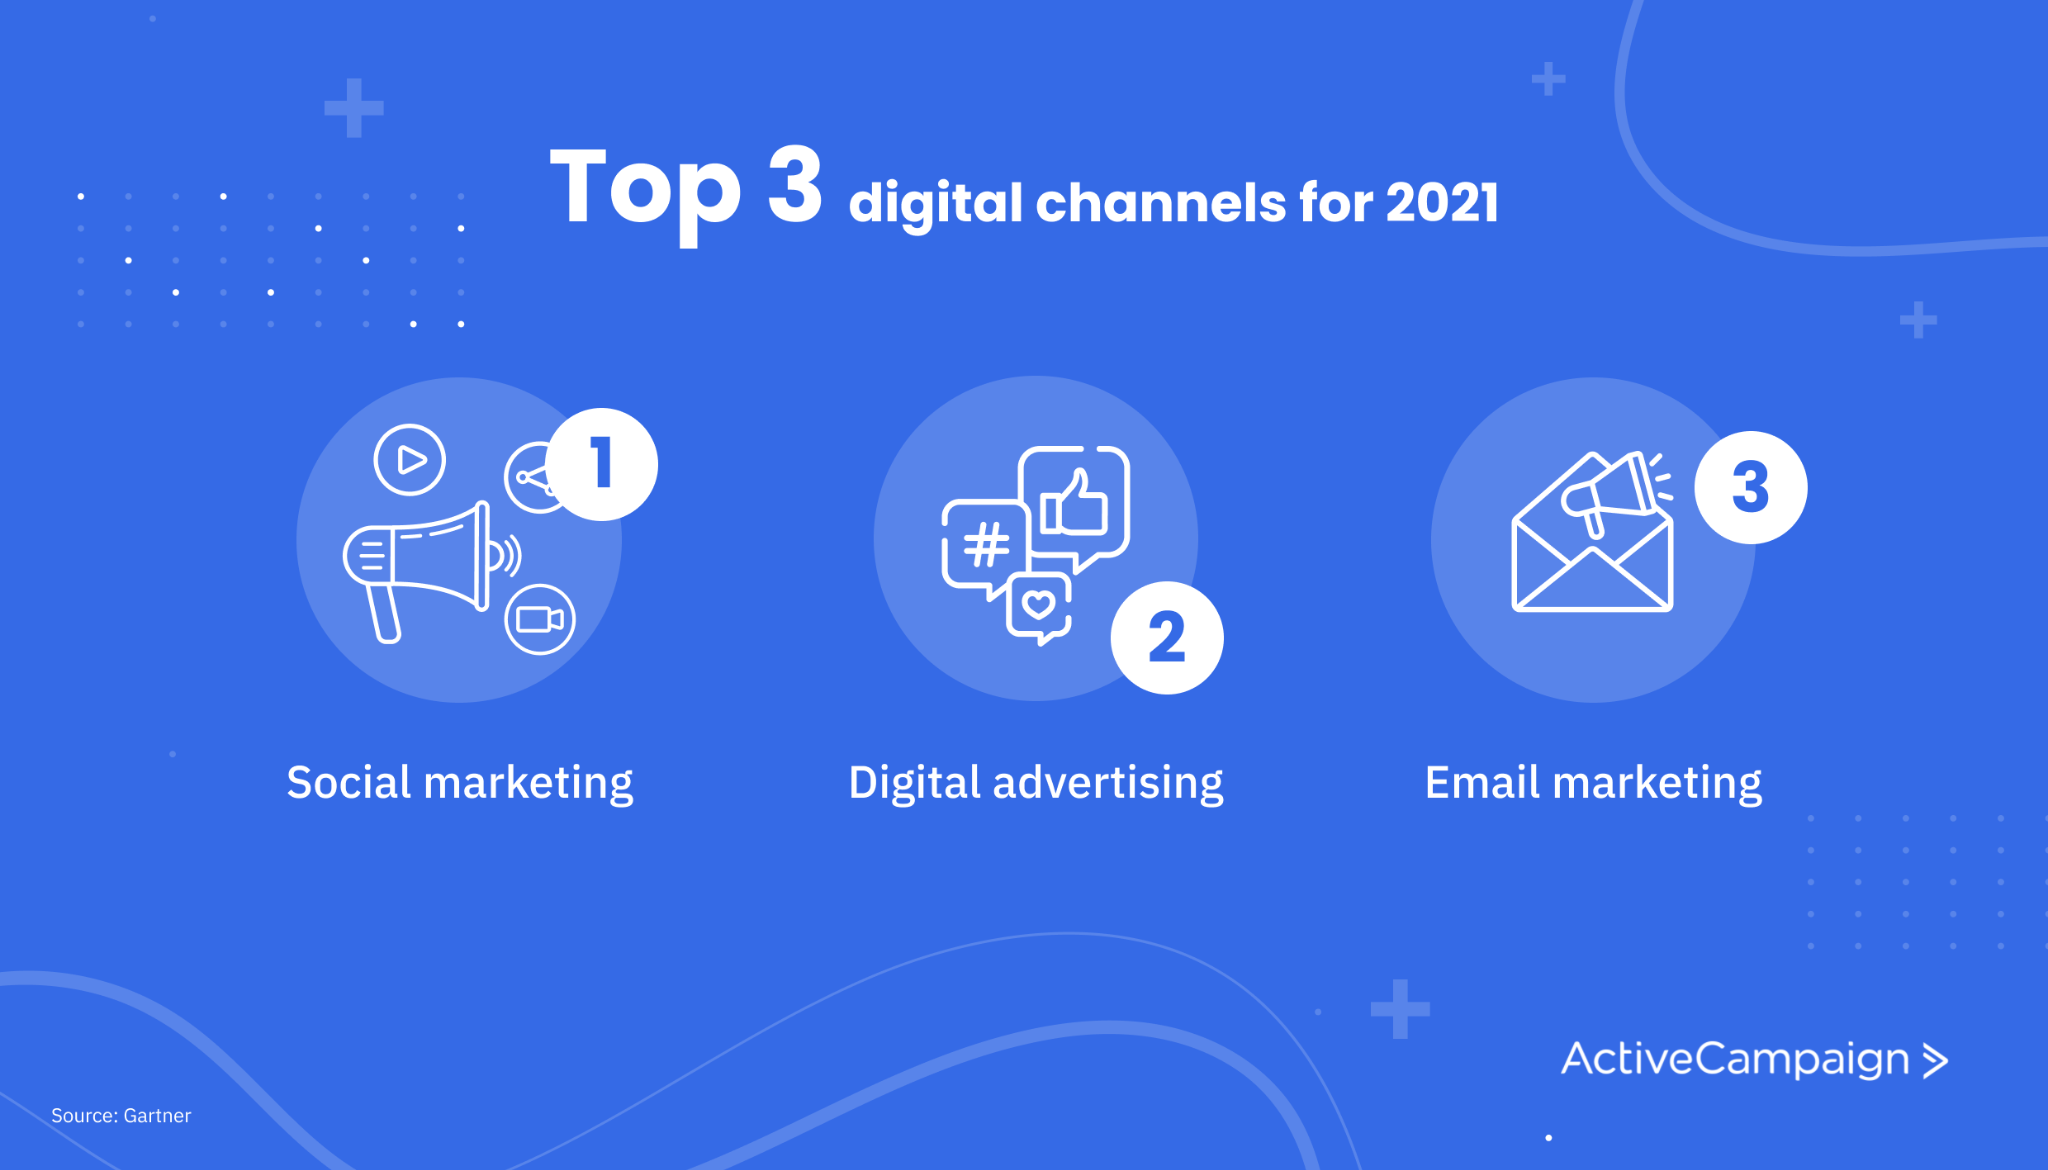 top three digital channels for 2021 include social marketing, digital advertising, and email marketing